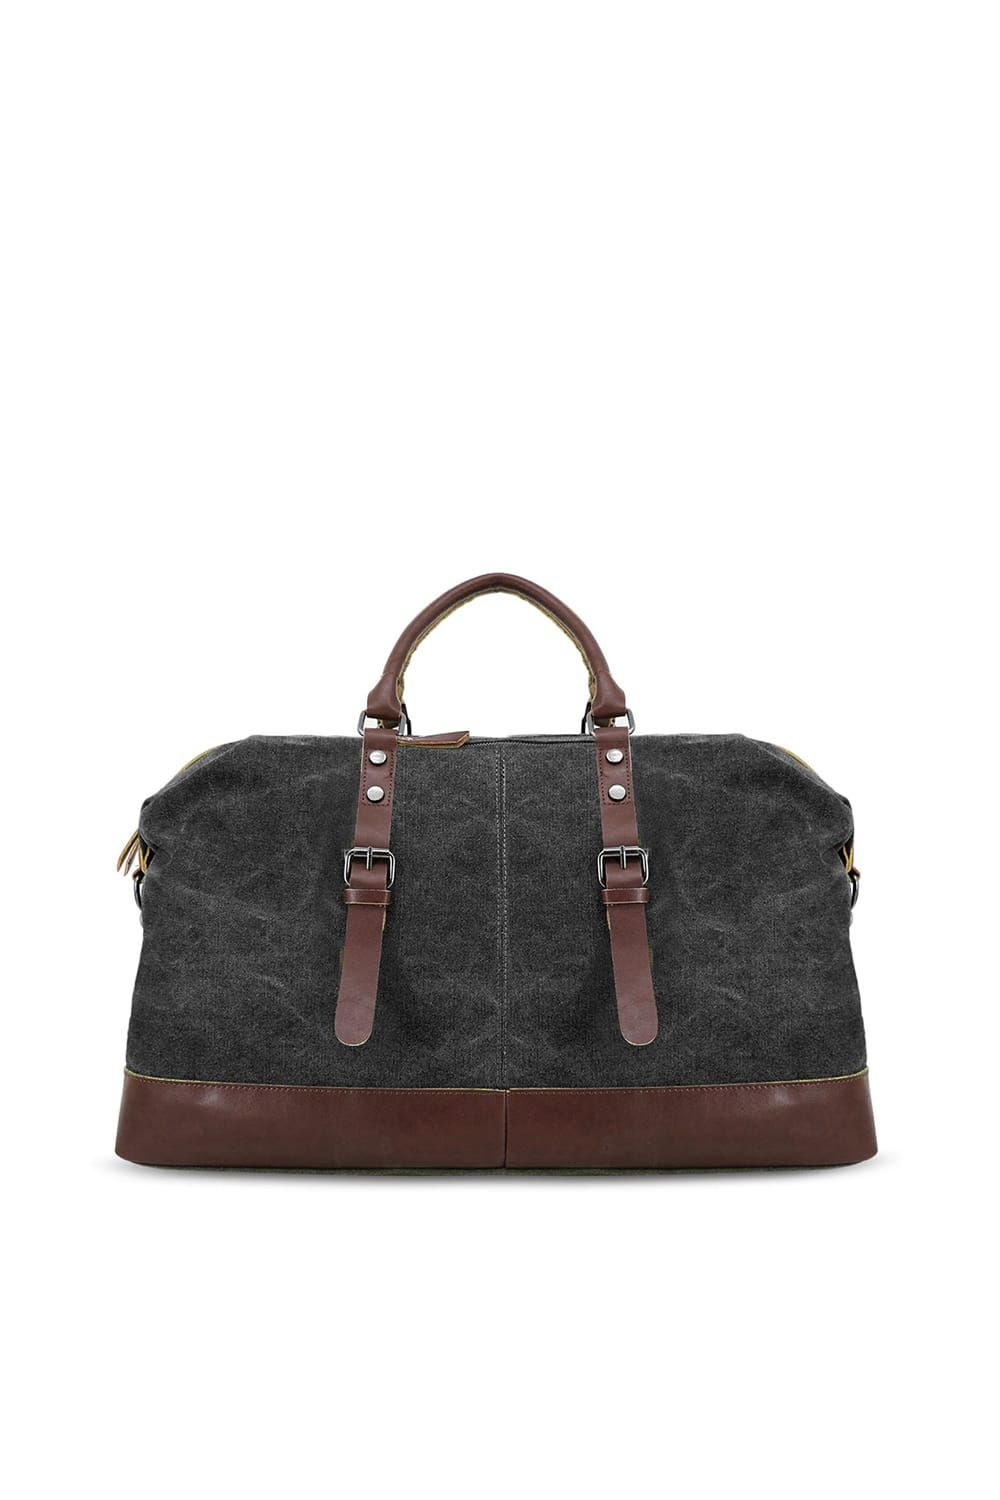 6118514c50f Gessy - Travel Bag. It`s your best choice for the little weekend in the  countryside. It takes so much, that`s enough to have style and space for  all the ...